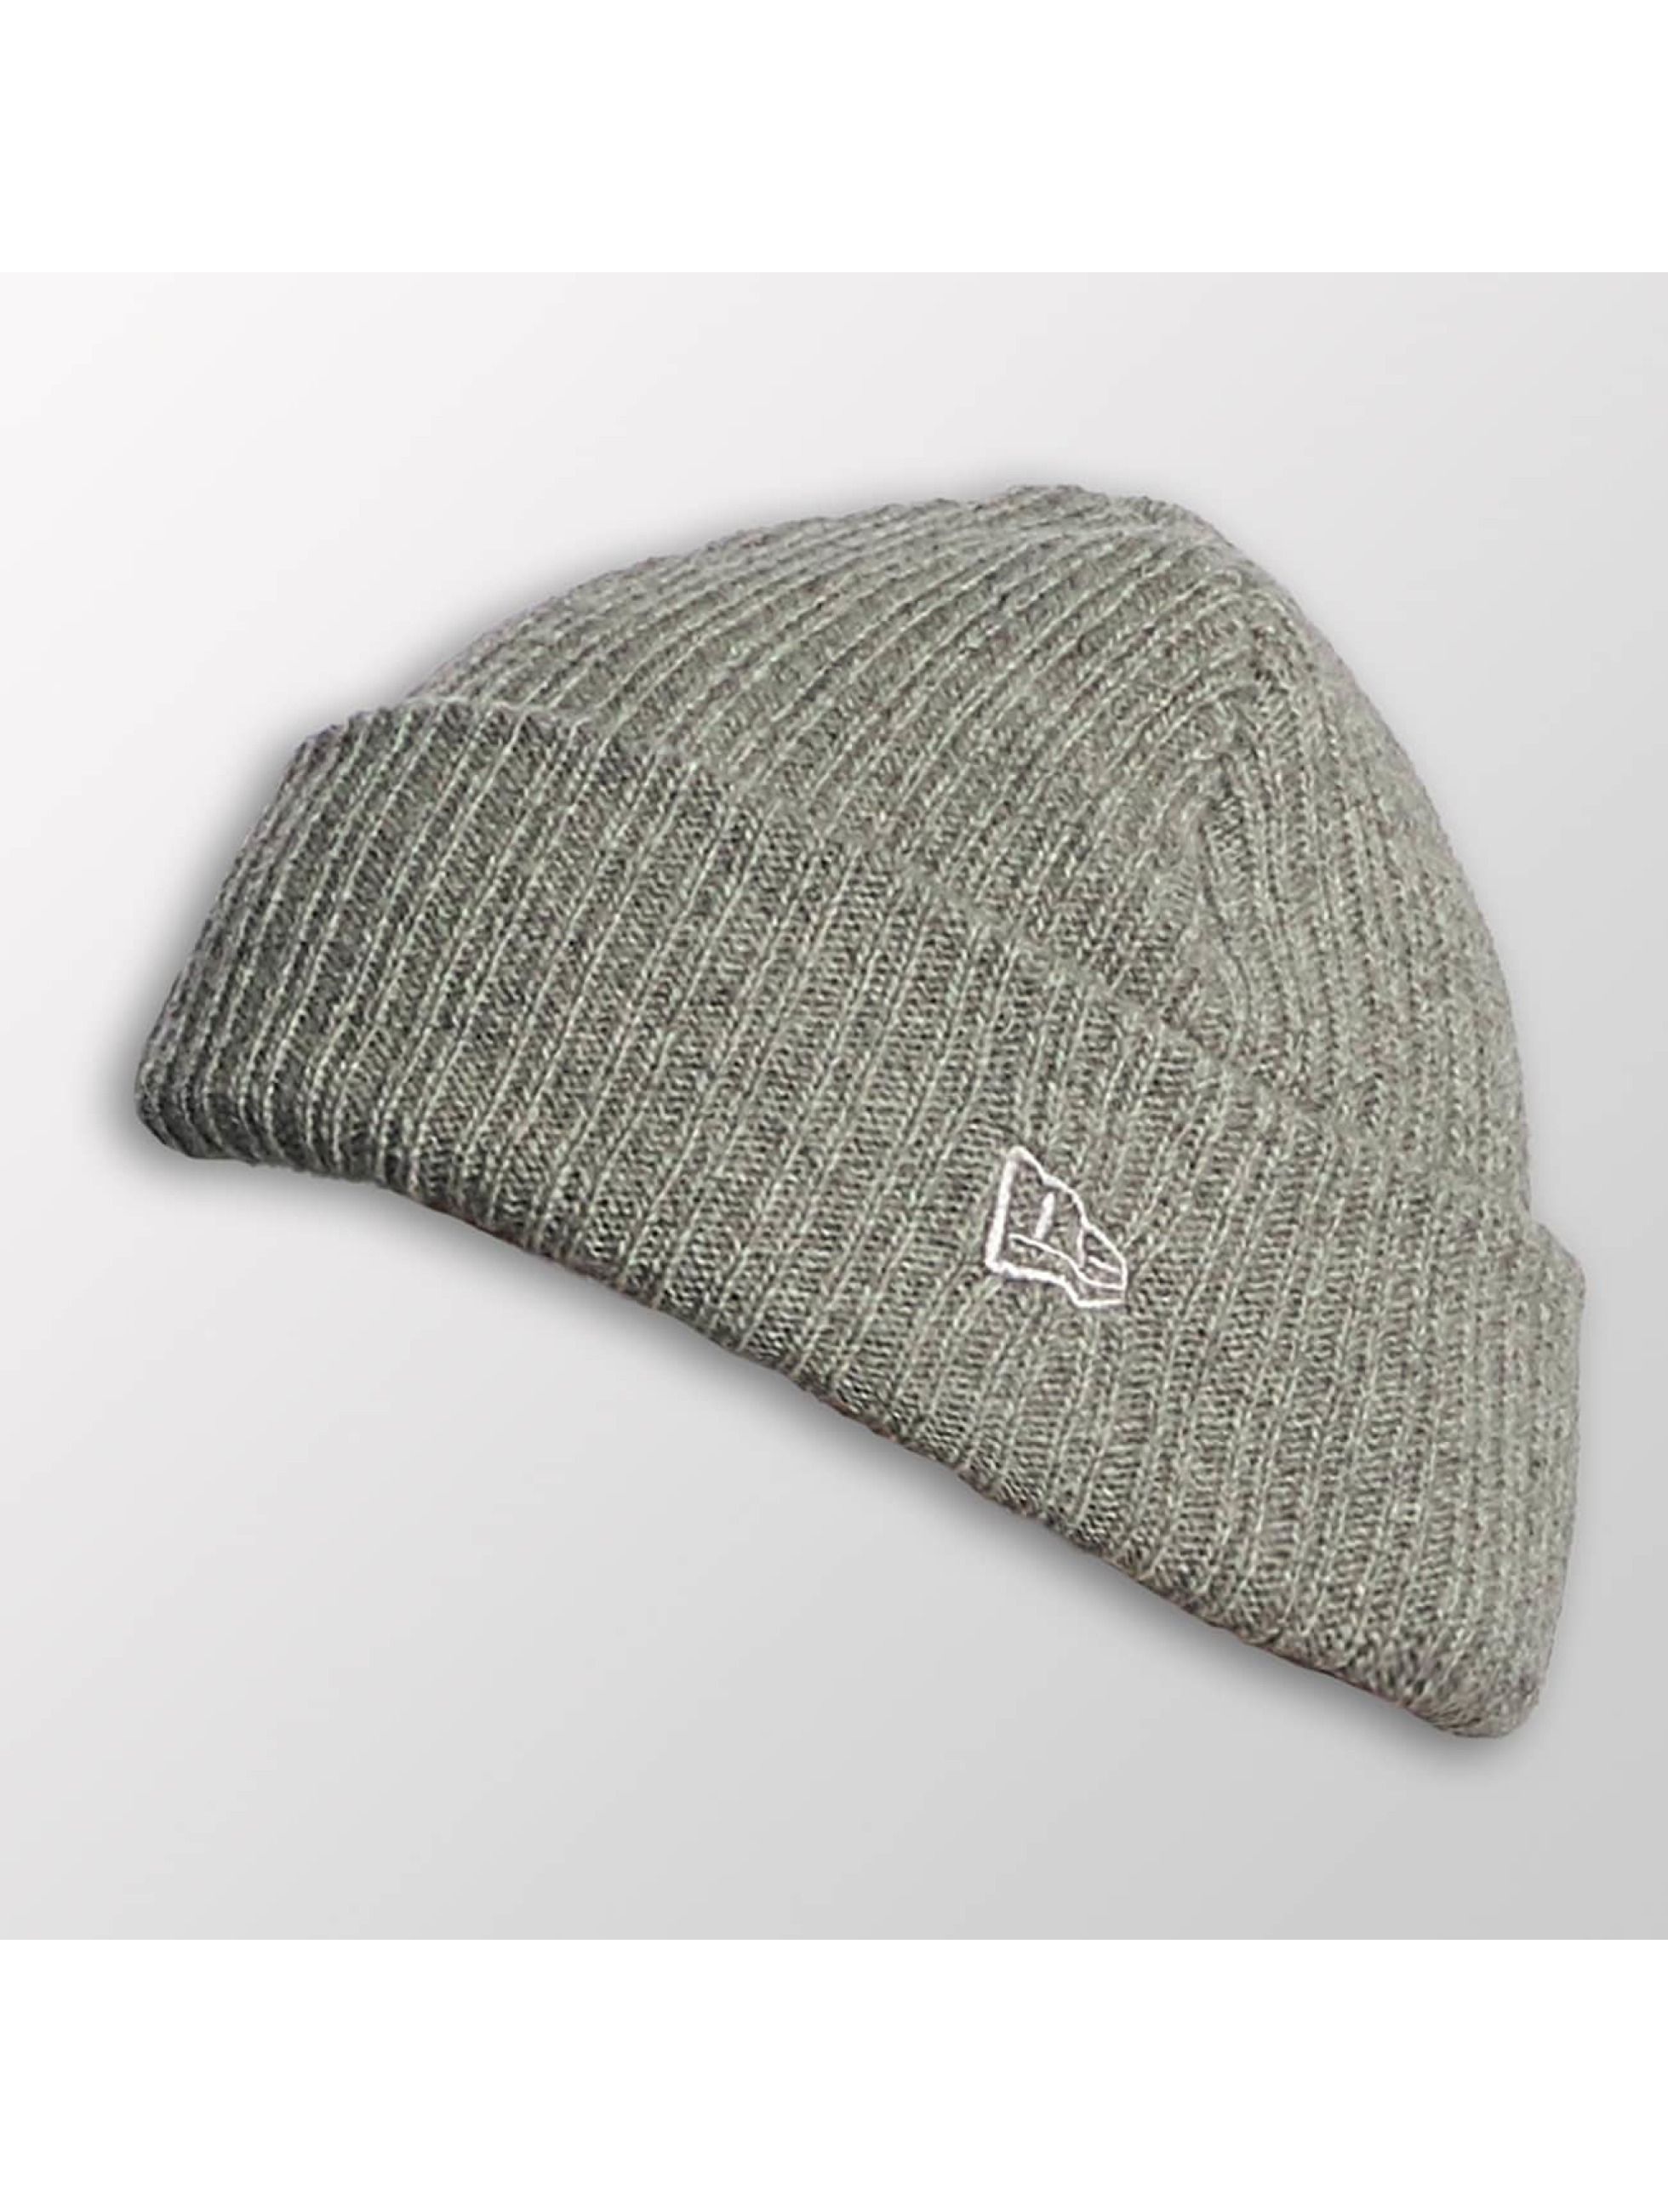 New Era Beanie Wool Mixed Knit grey